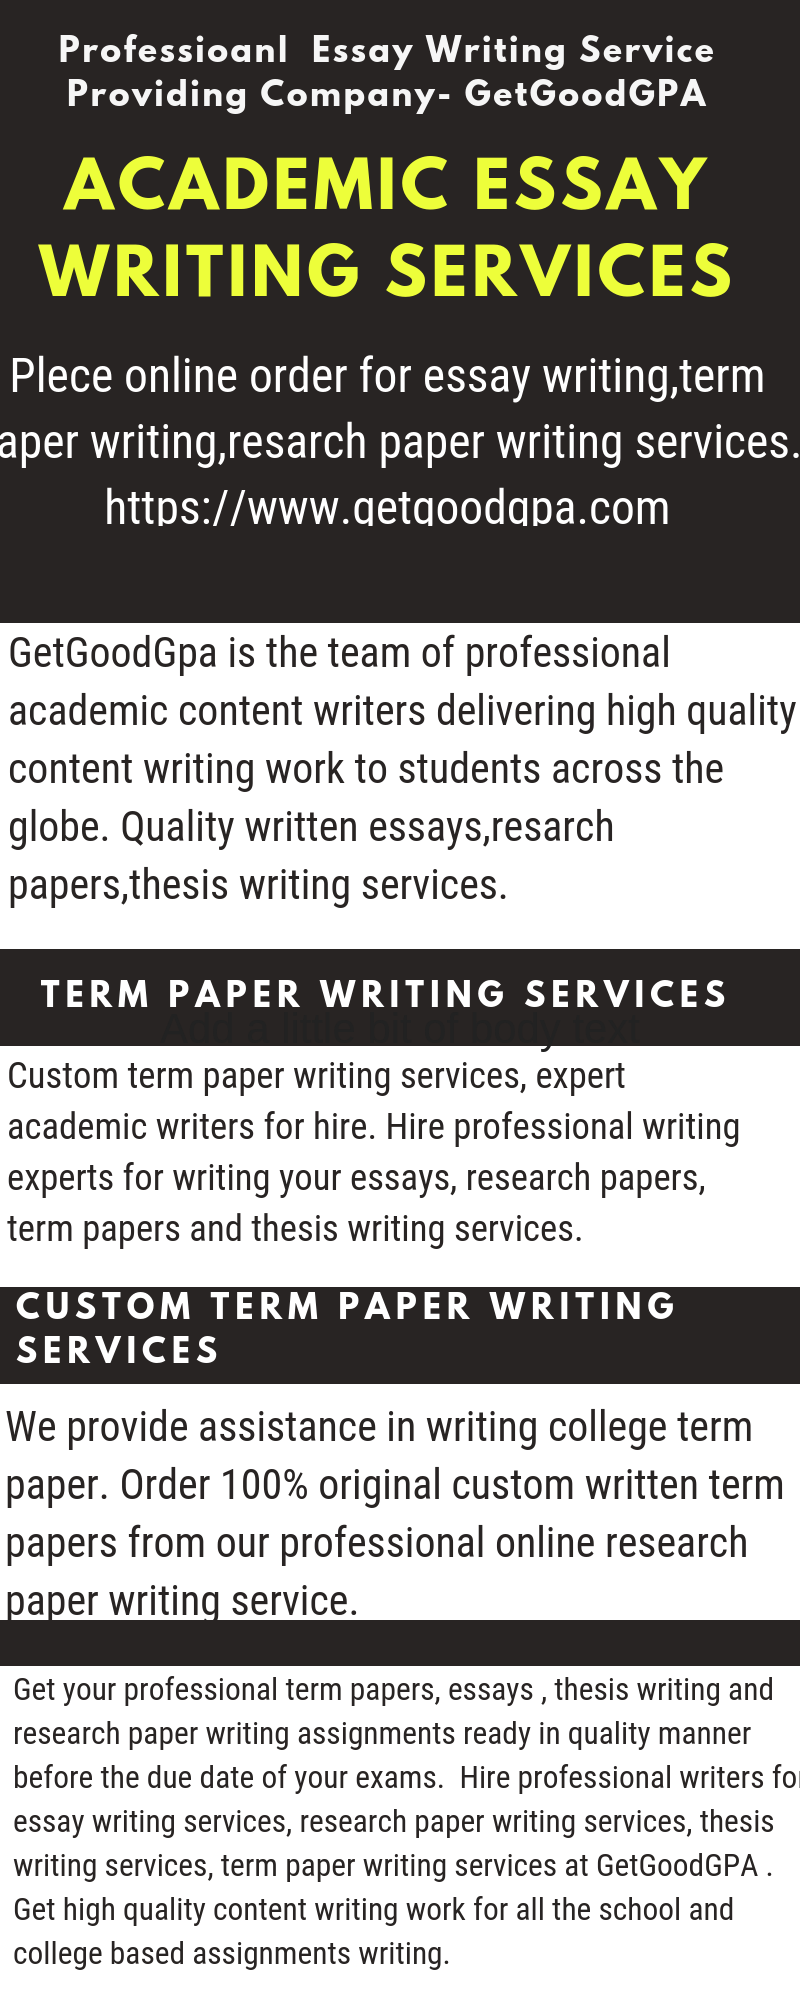 003 Research Paper Custom Term Writing Magnificent Service Services Full